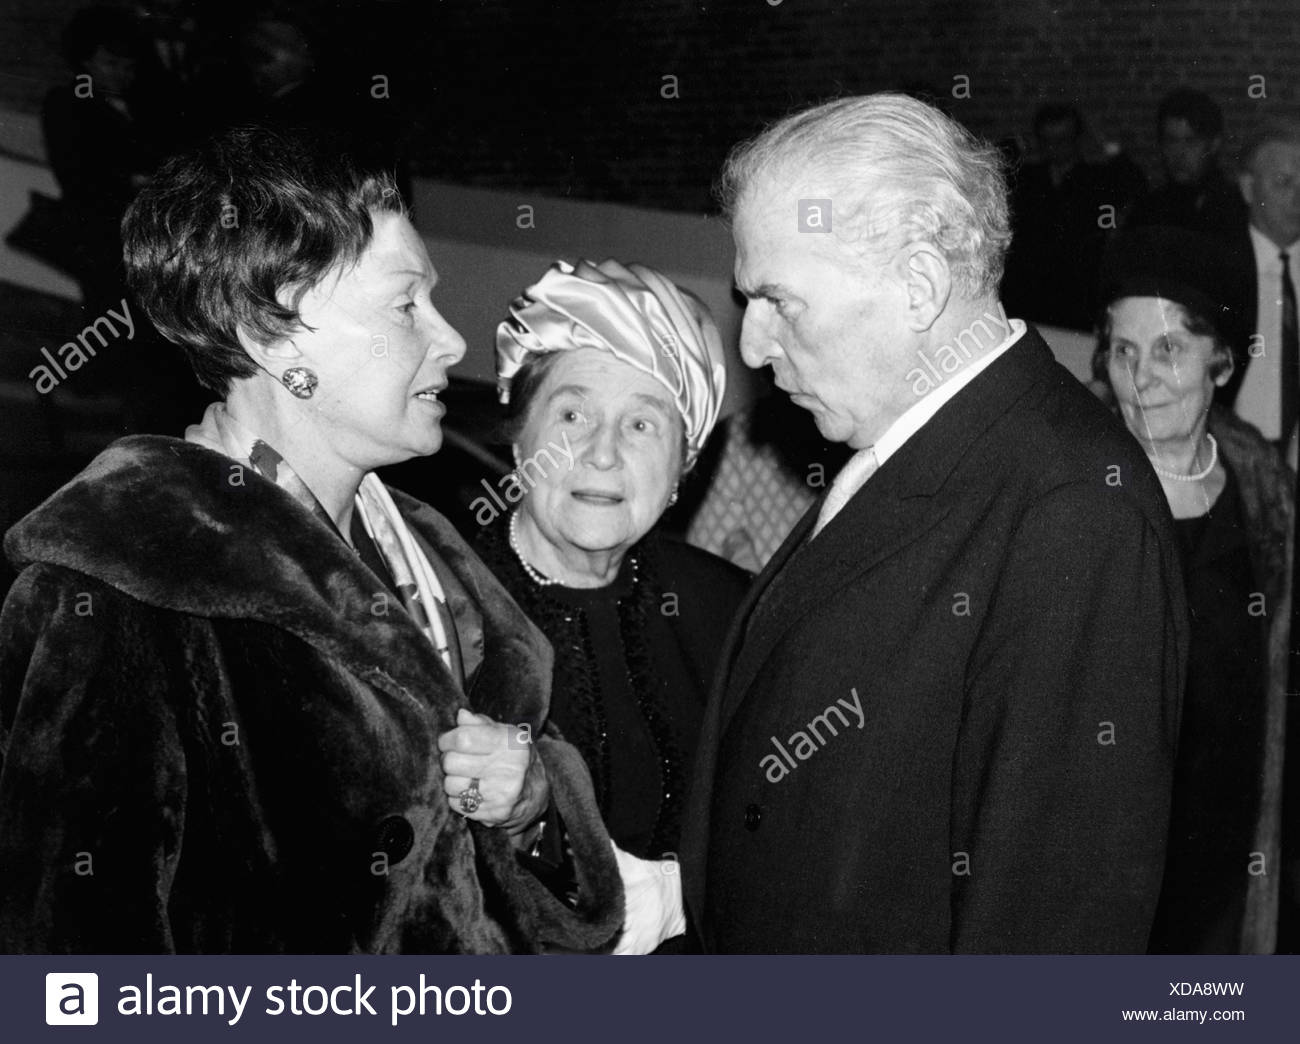 Zuckmayer, Carl, 27.12.1896 - 18.1.1977, German author / writer, half length, with Else Wagner and Lil Dagover, party on the occ Stockbild